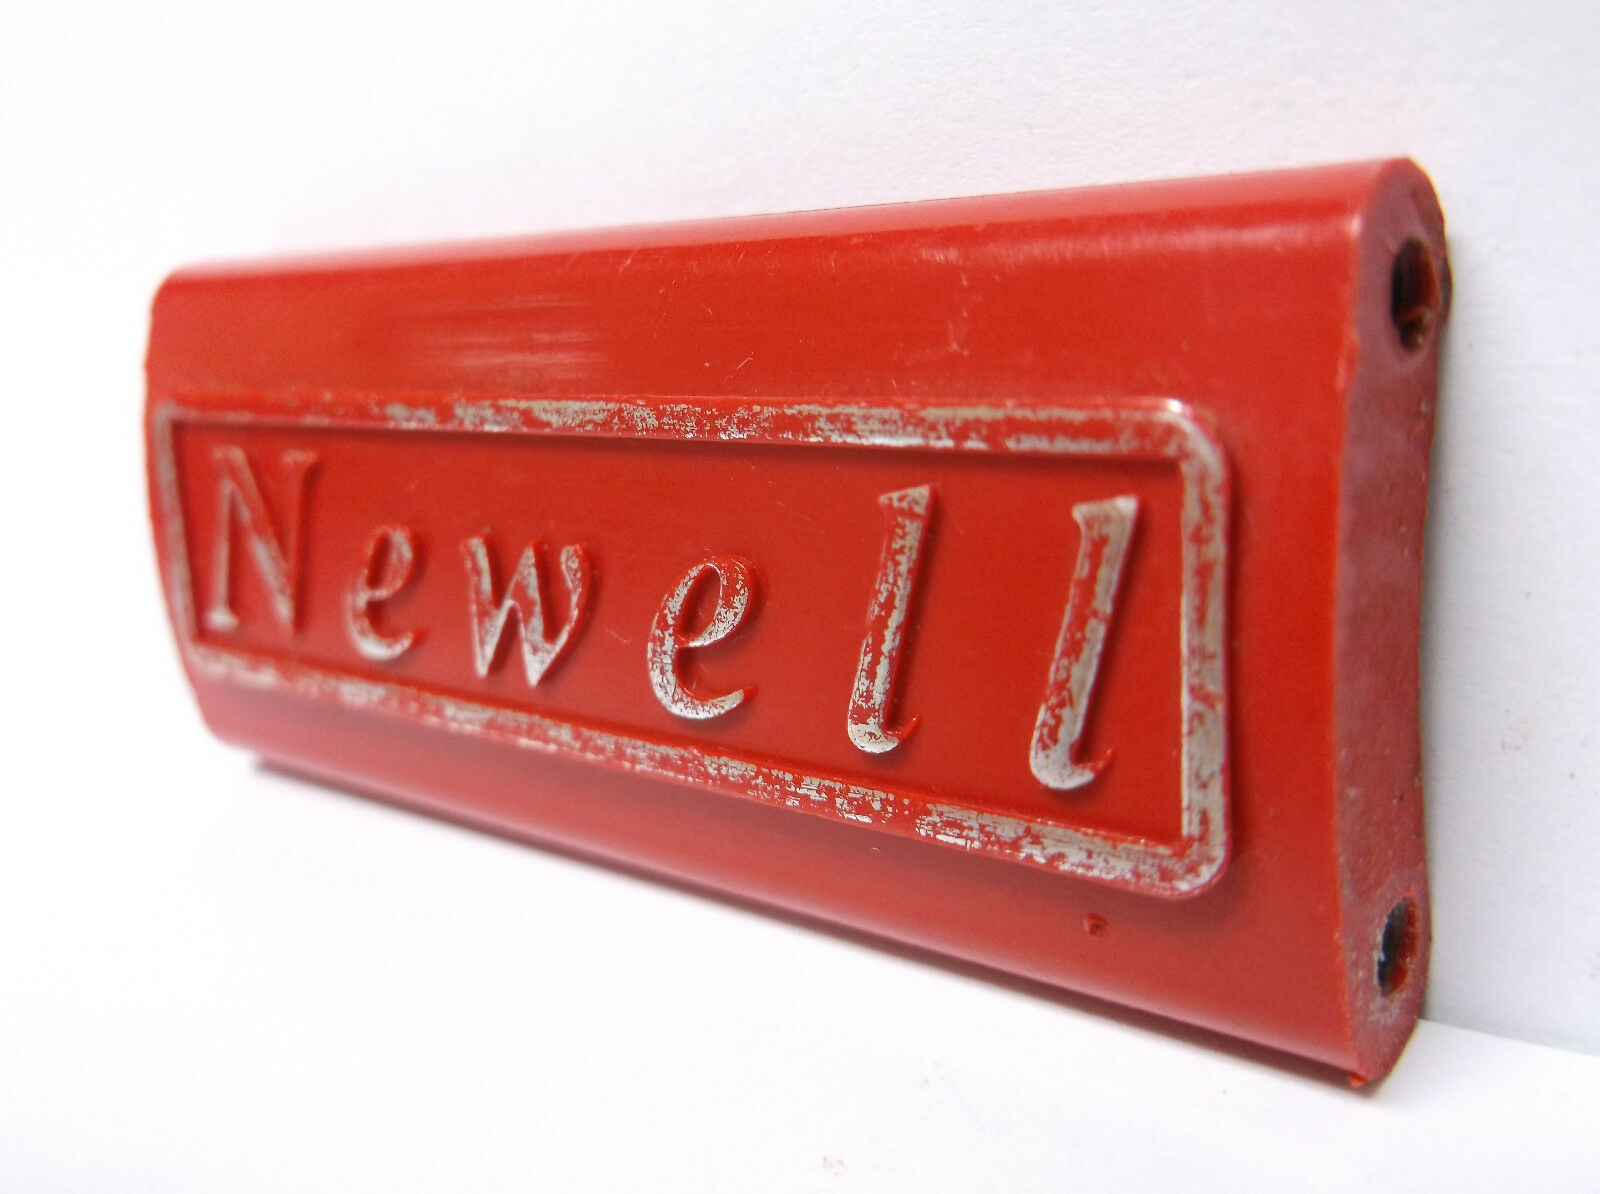 USED NEWELL CONVENTIONAL REEL PART - R 533 5.5 rot - Spacer Bar  A